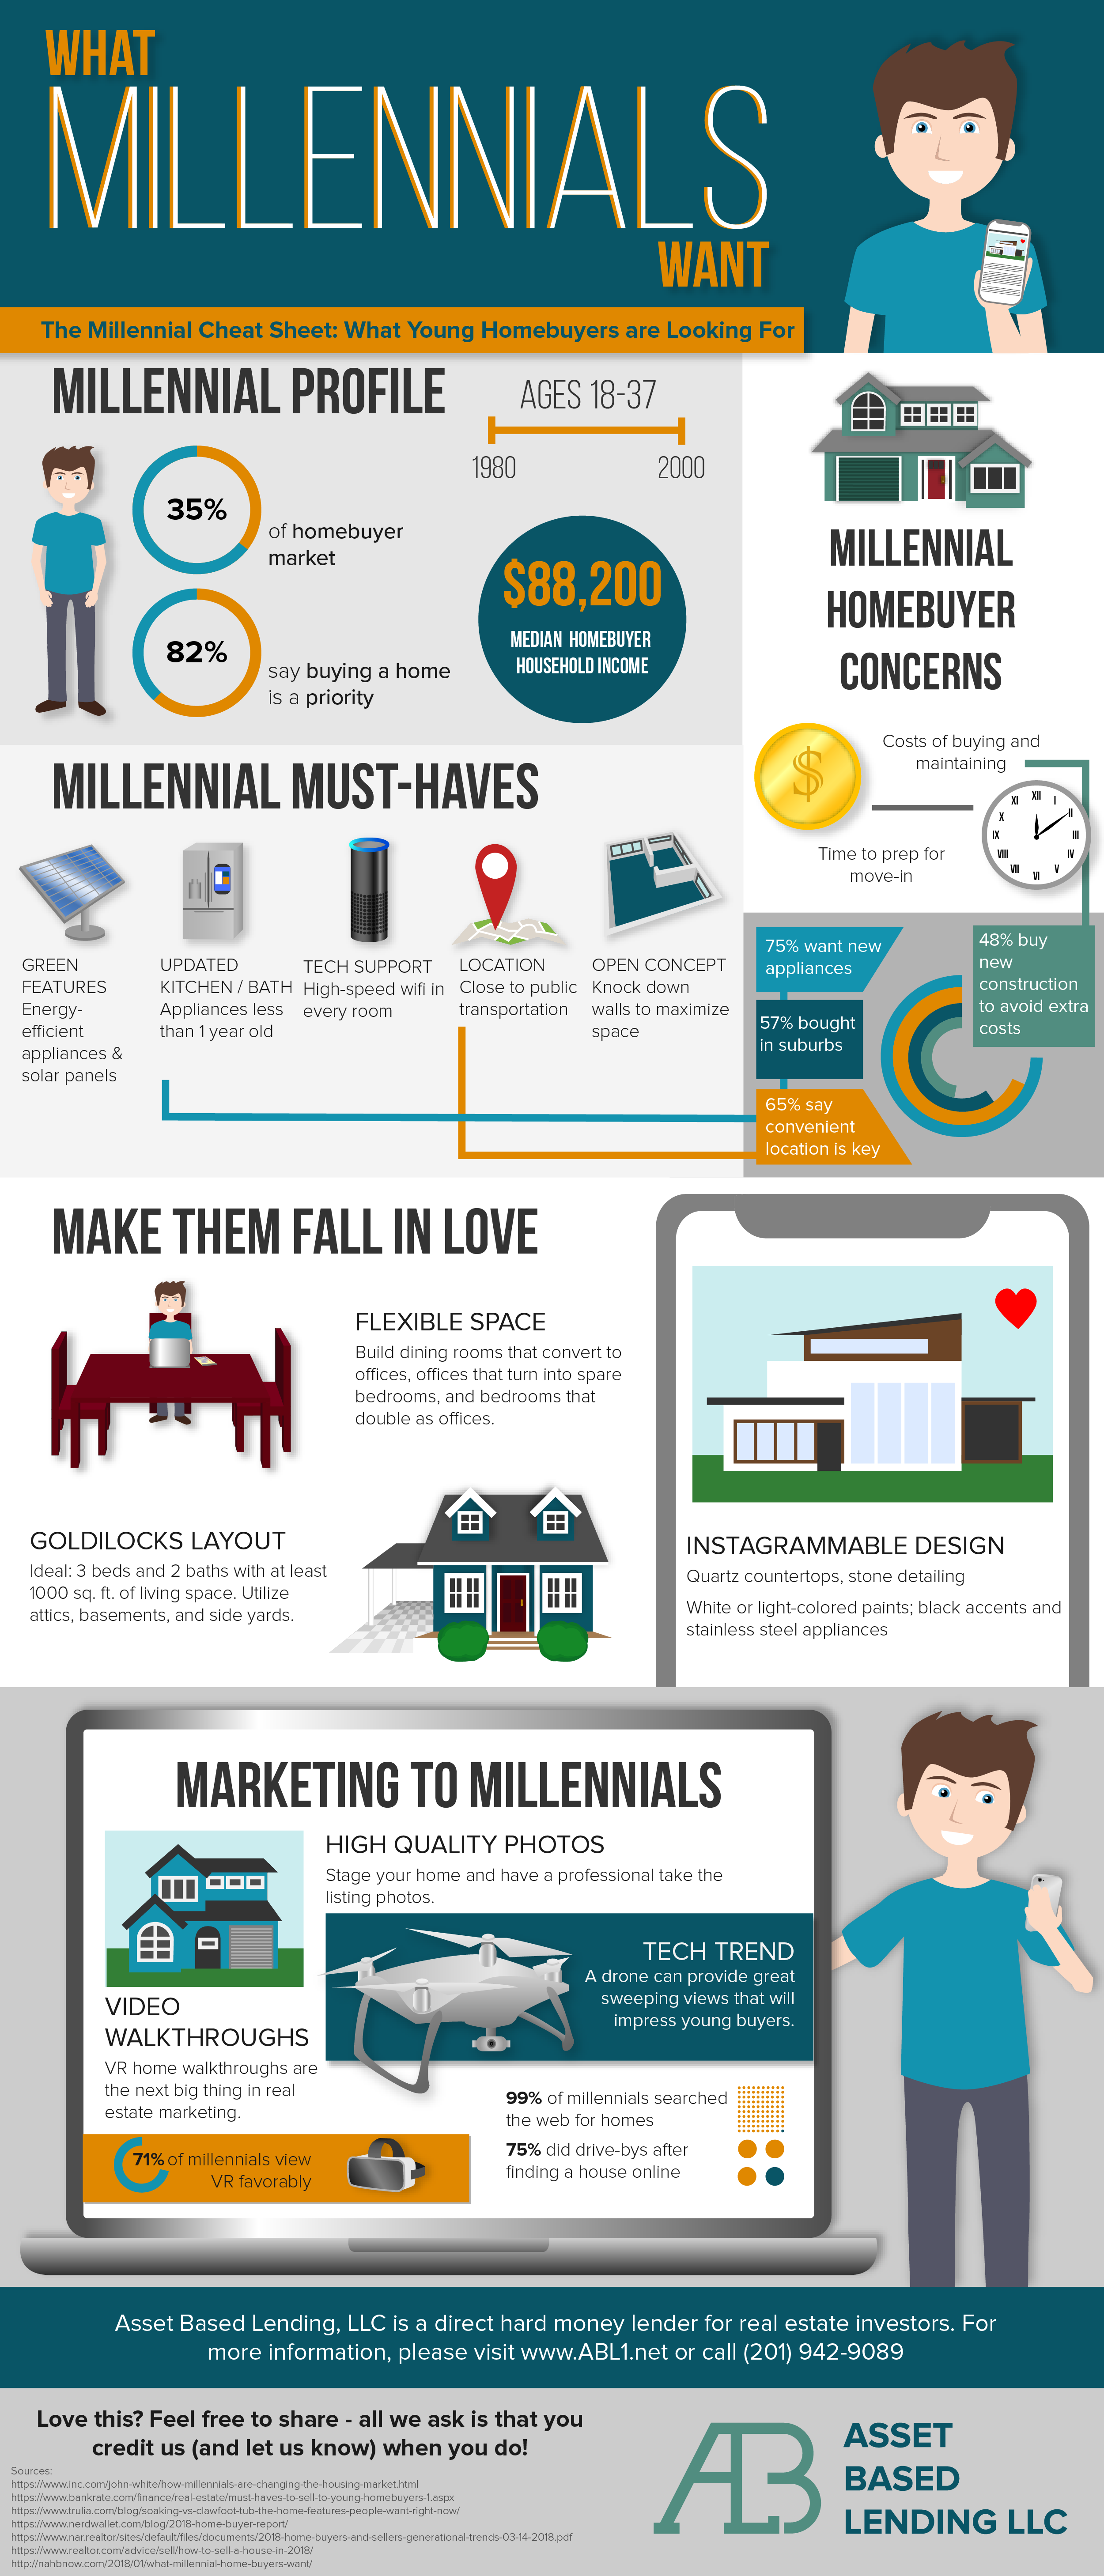 Real Estate Marketing For Millennials